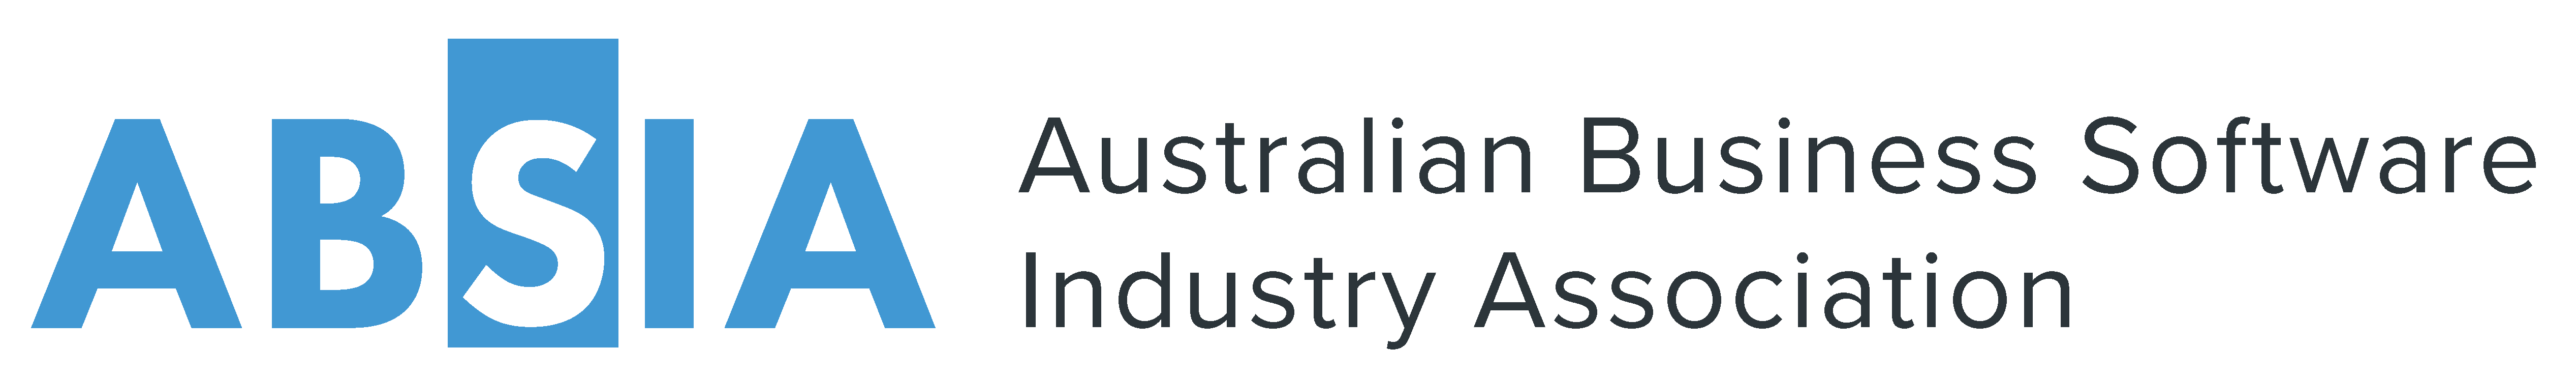 Australian Business Software Industry Association